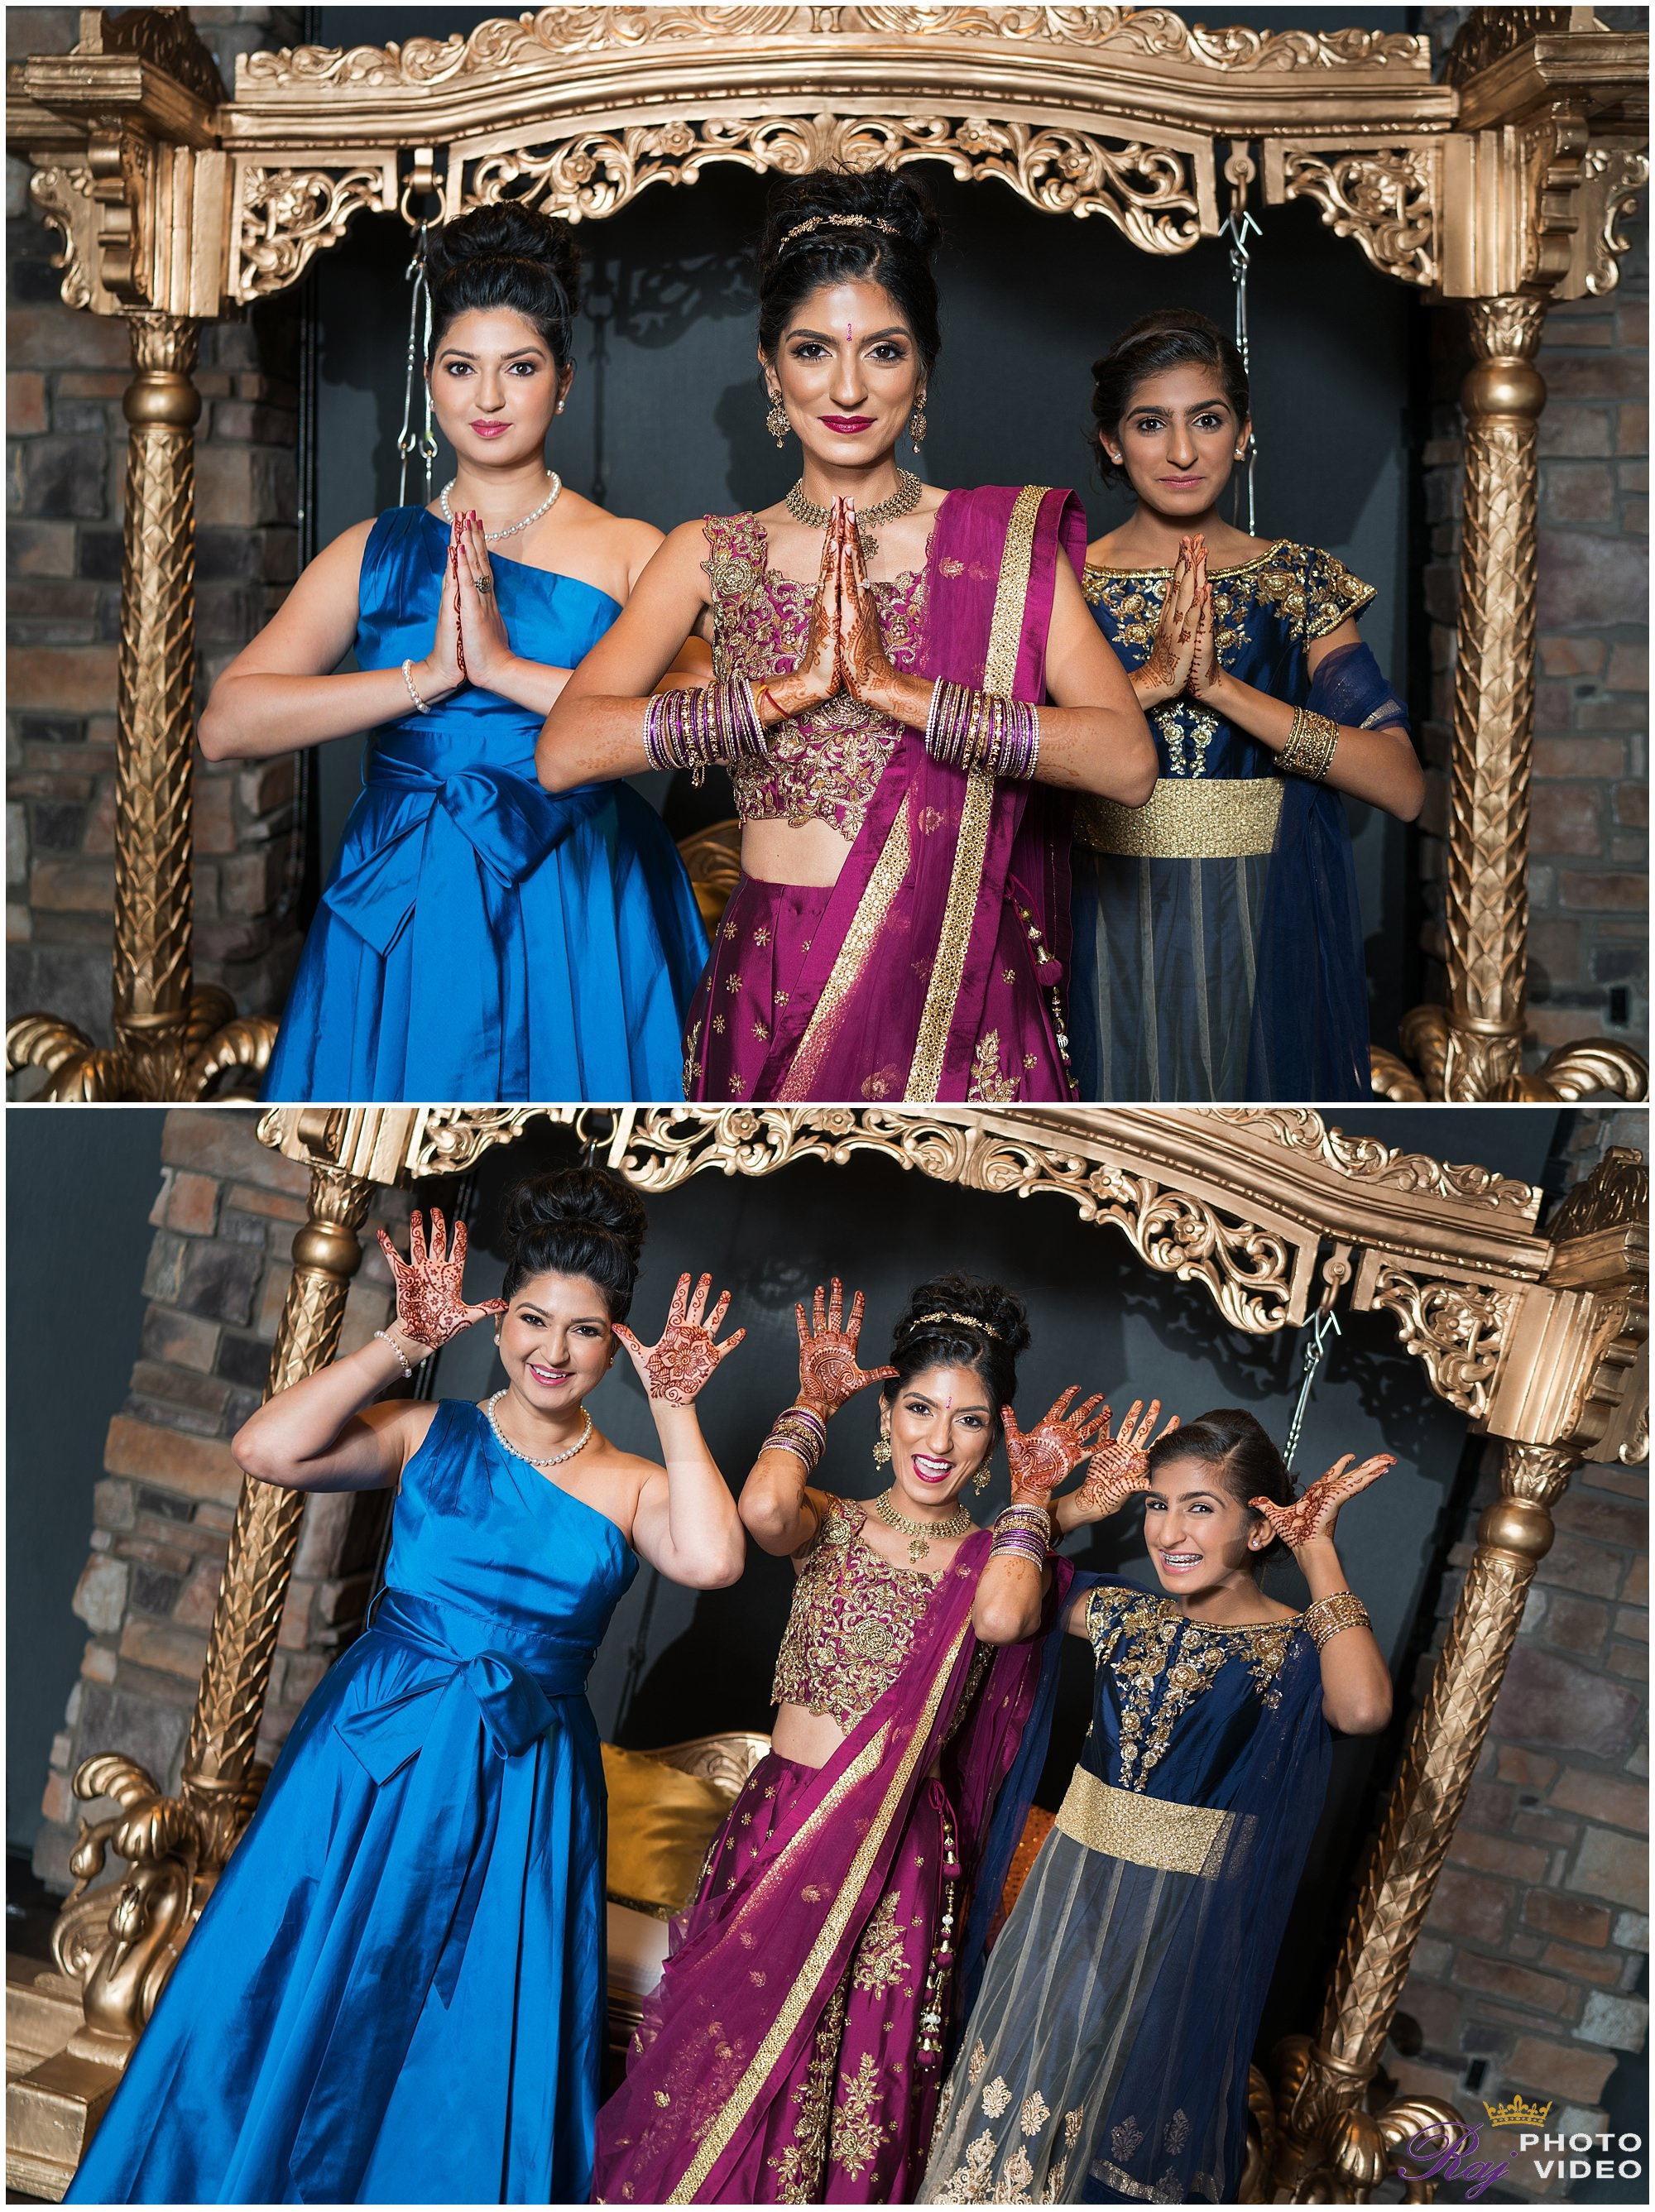 Aviano_Community_Center_Phoenix_Arizona_Indian_Wedding_Sangeet_Sapna_Shyam-3.jpg